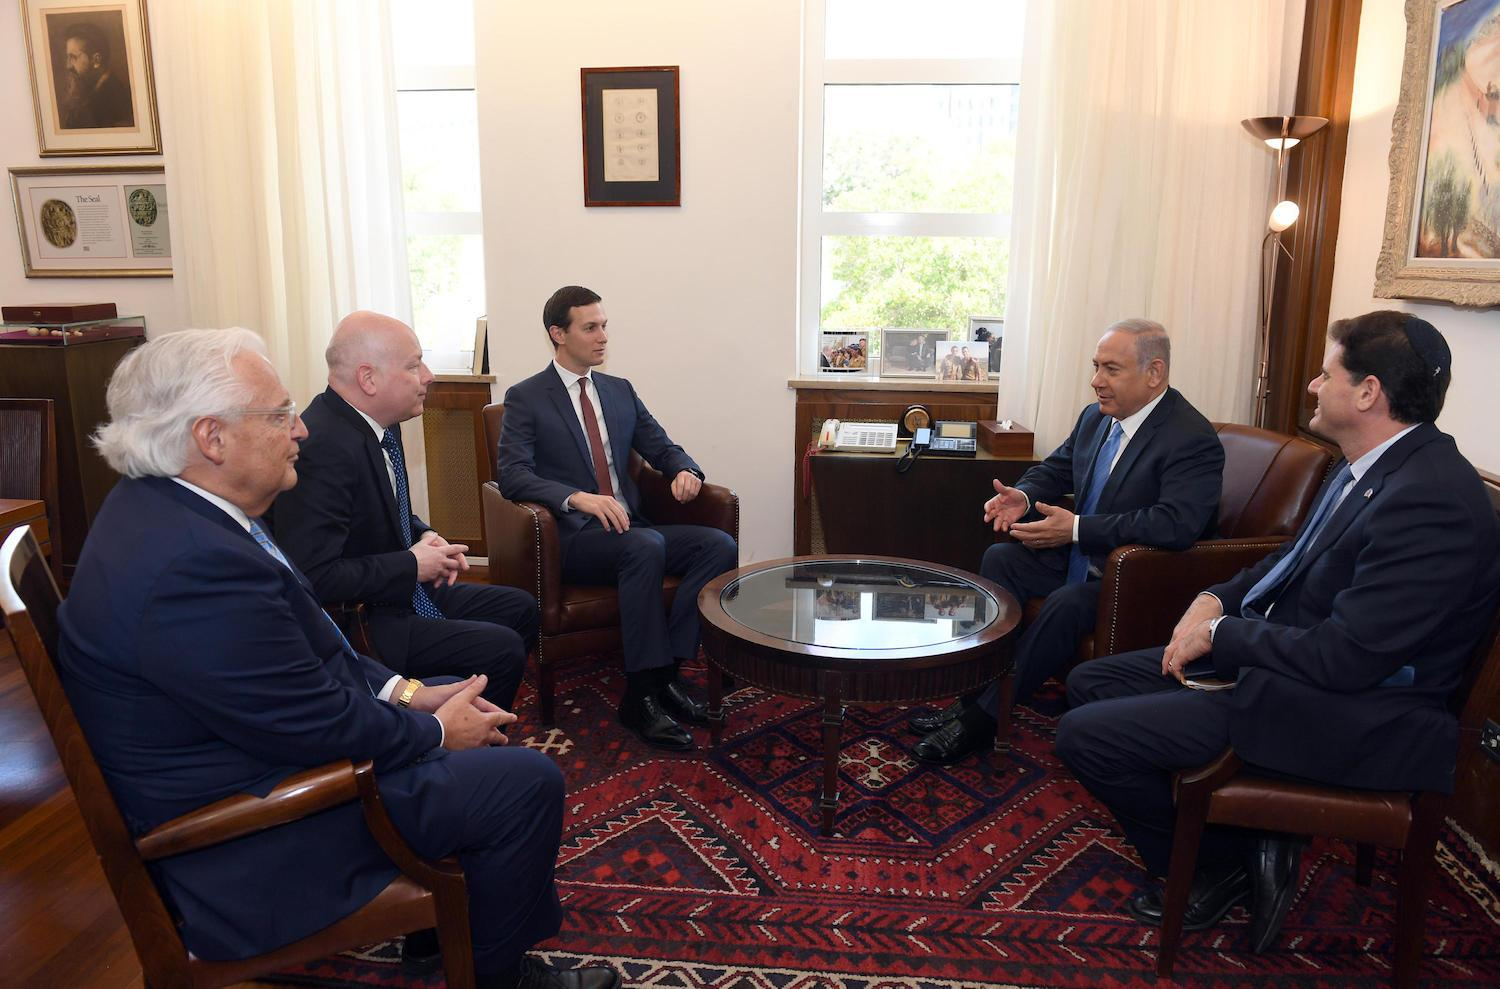 pm-netanyahu-amb-dermer-meet-with-senior-american-officials